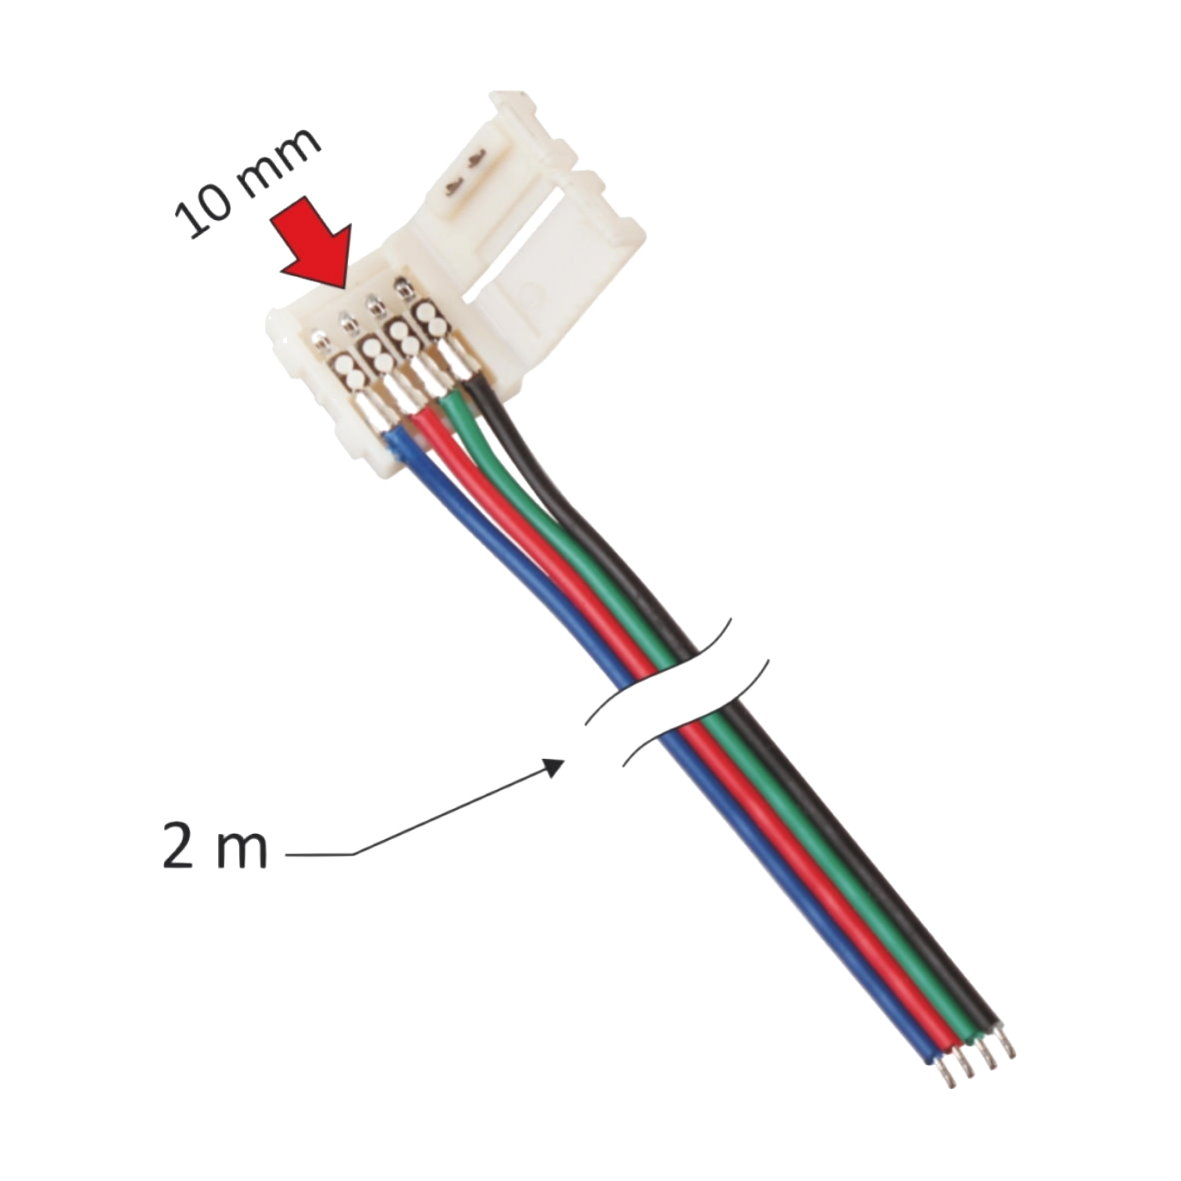 Led Stecker Led Adapter Verbindungskabel Lichtband Strip Kabel Pin